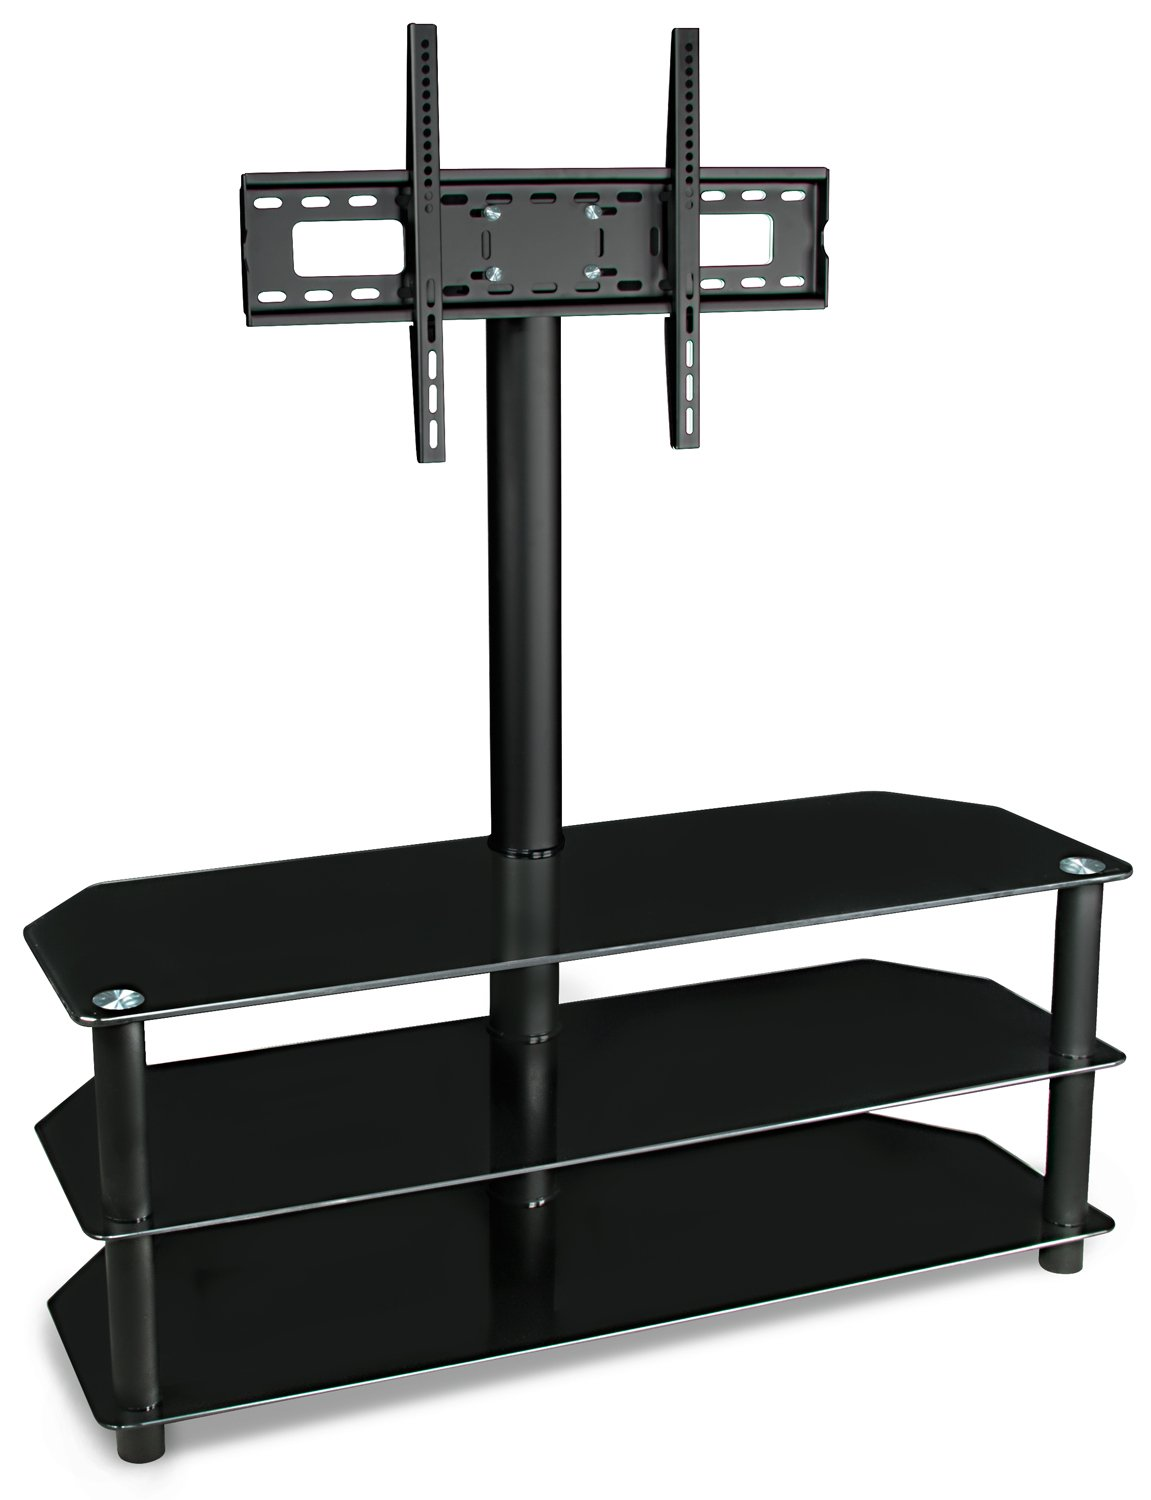 amazoncom mountit tv stand with mount and glass shelves for audio video black kitchen u0026 dining